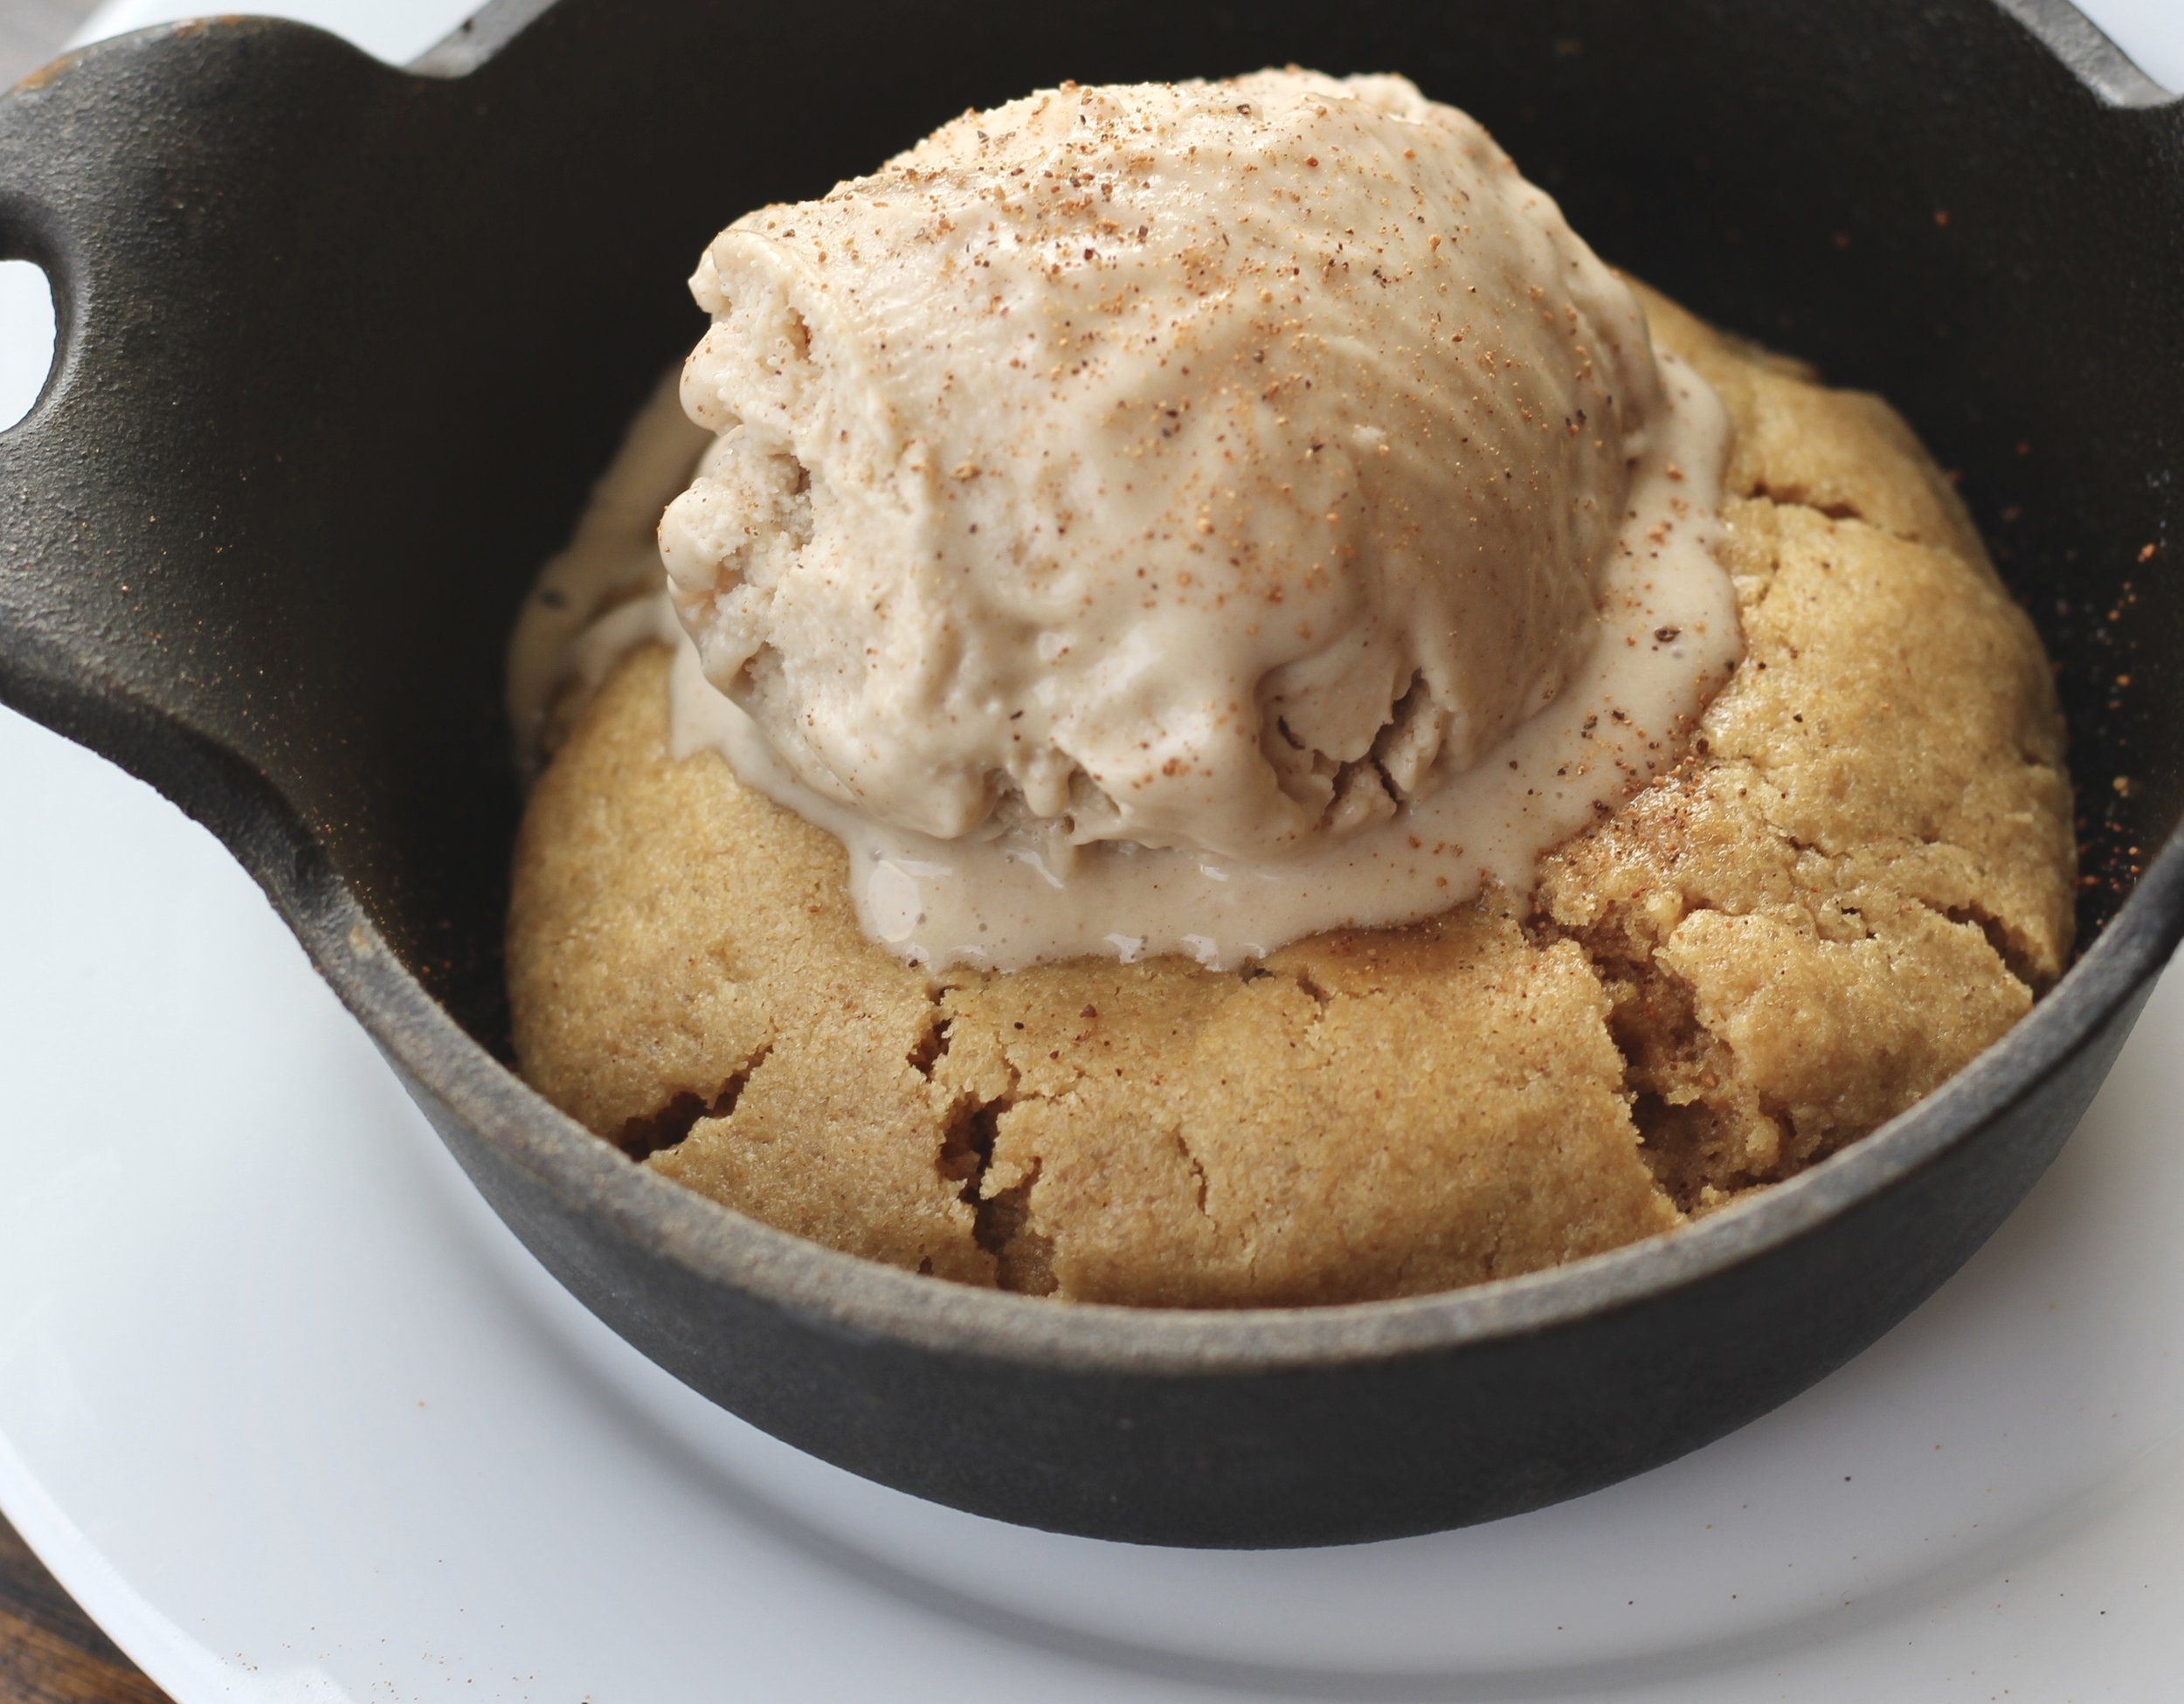 Egg-Free Peanut Butter Cookie Skillets | Wholesome